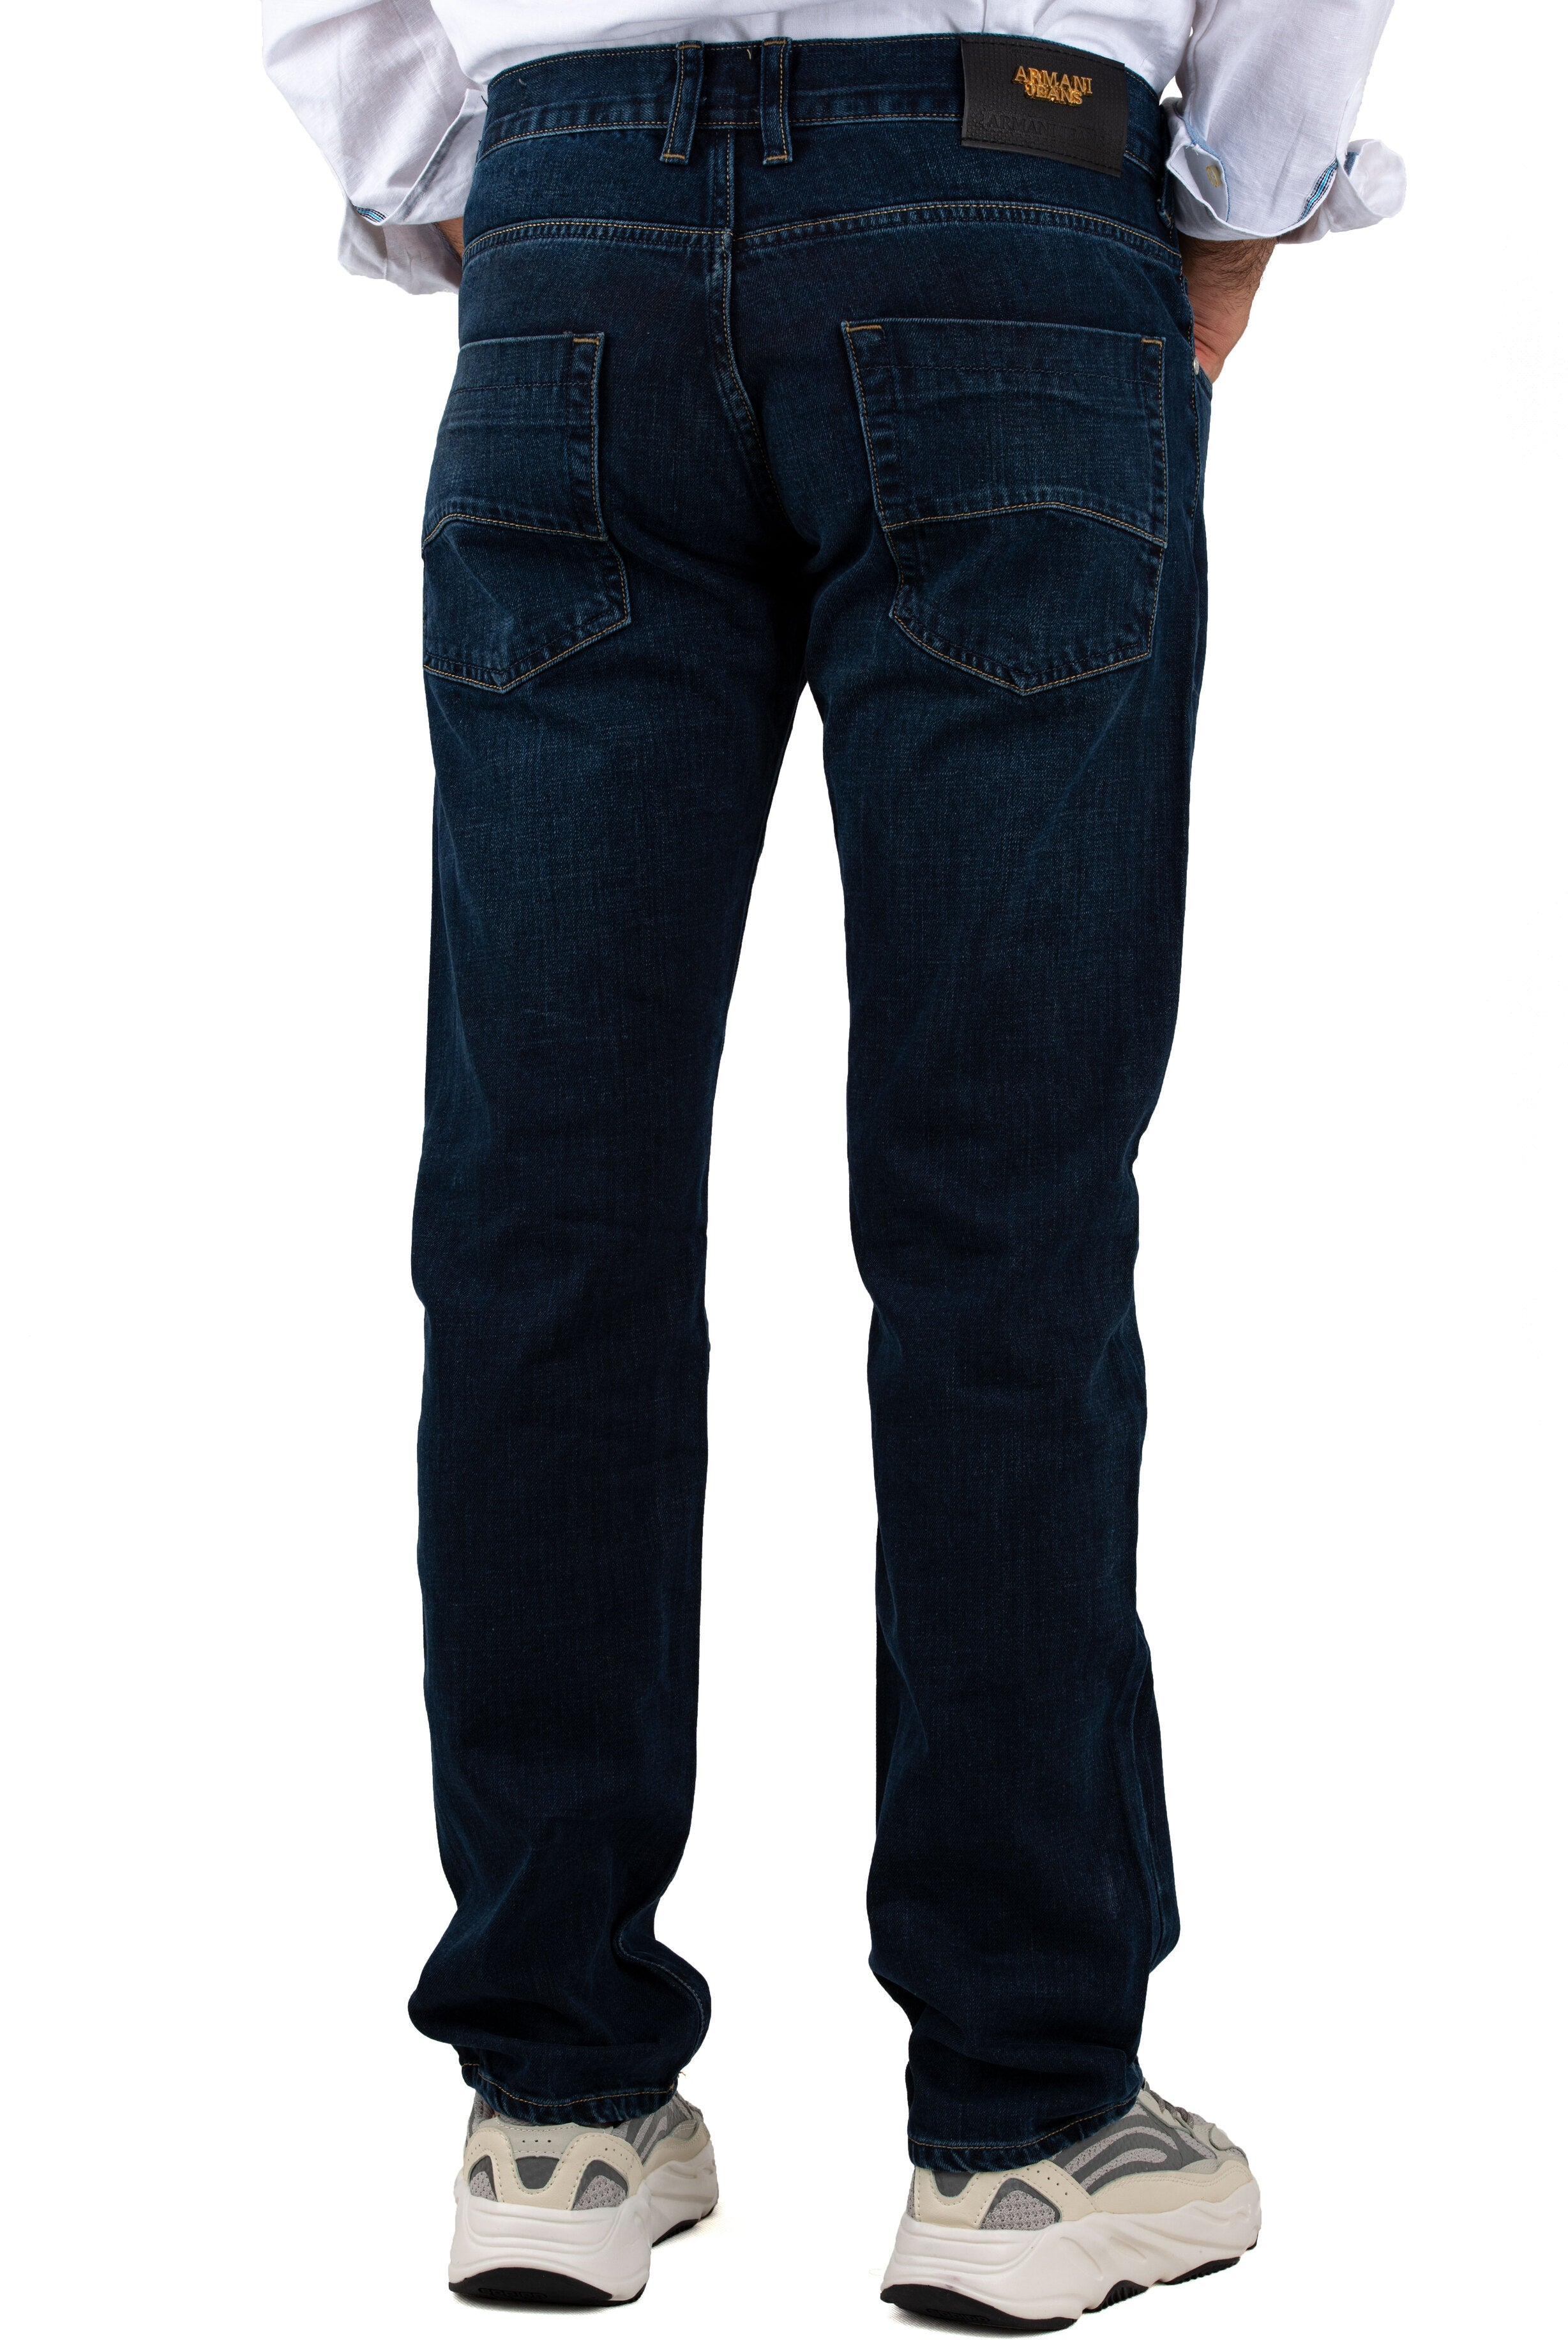 Armani Jeans For Men